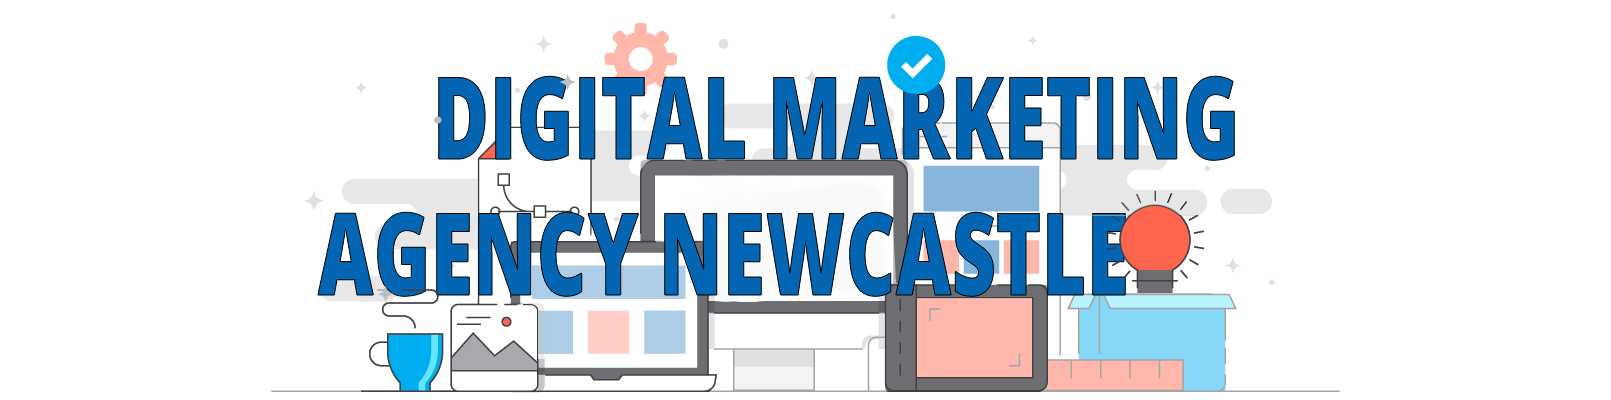 digital marketing agency in newcastle to grow your online businesses